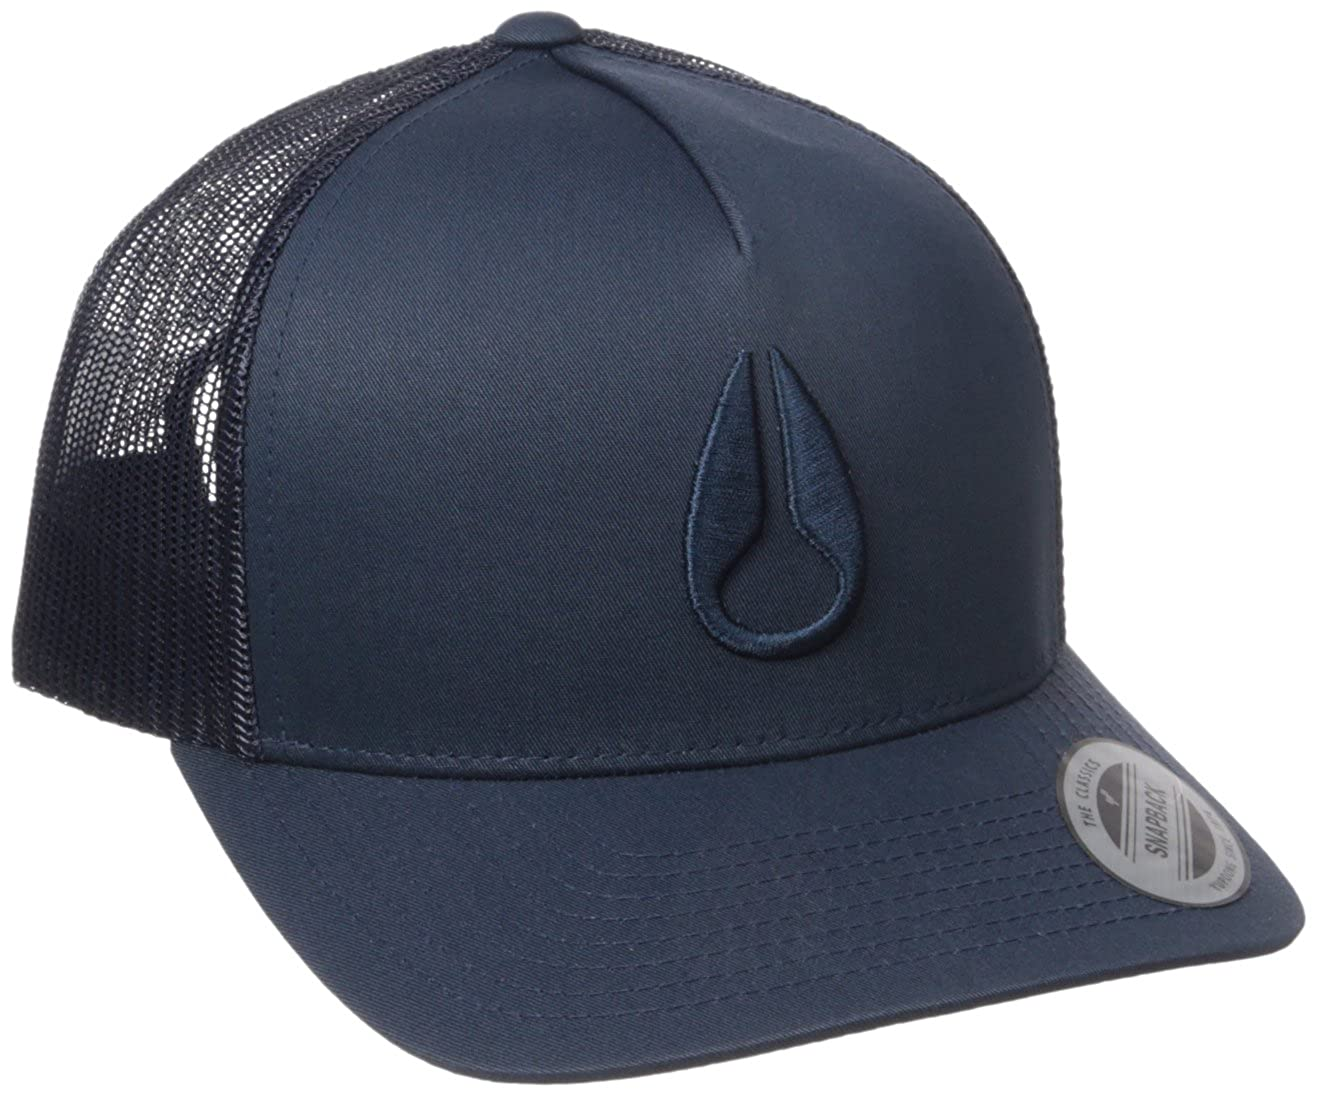 NIXON Men's Iconed Trucker Hat All Navy One Size Nixon Men's Apparel C1862605